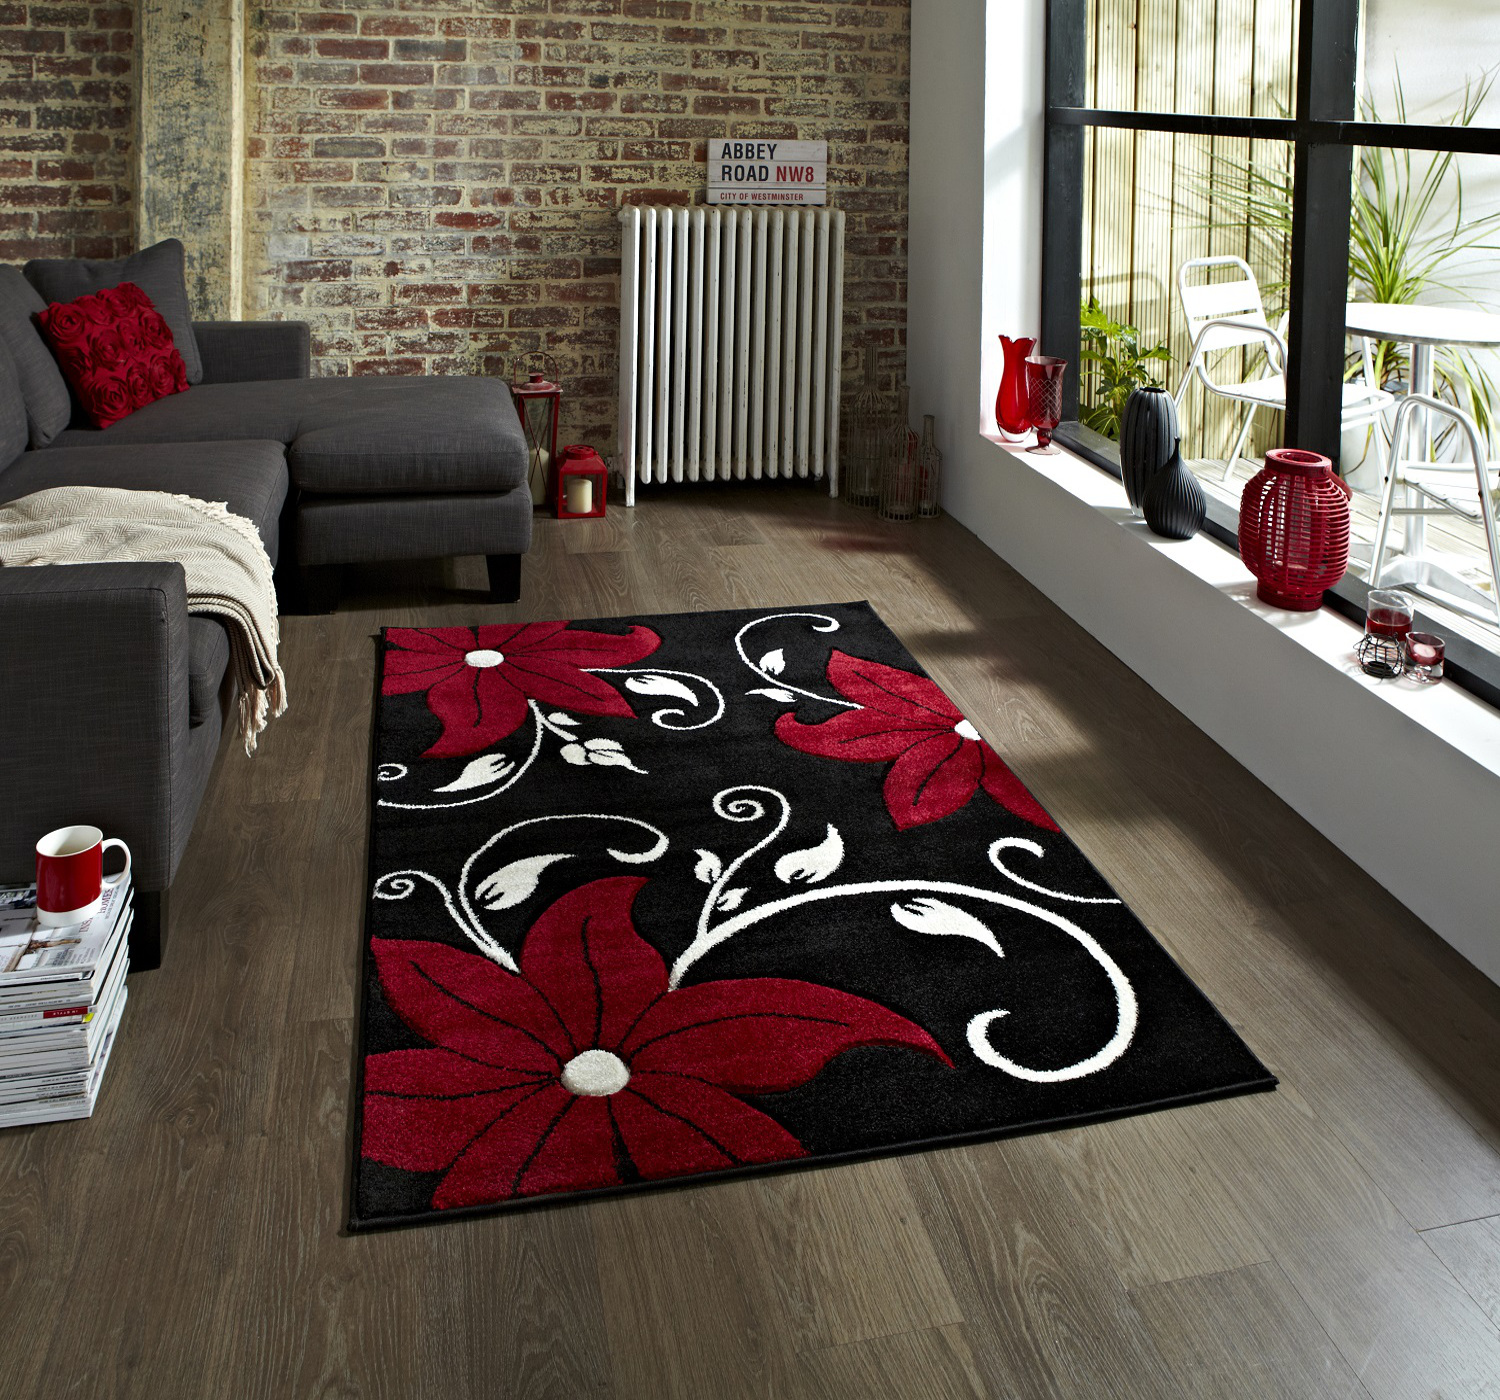 Black Red Fl Hand Carved Effect Rug 100